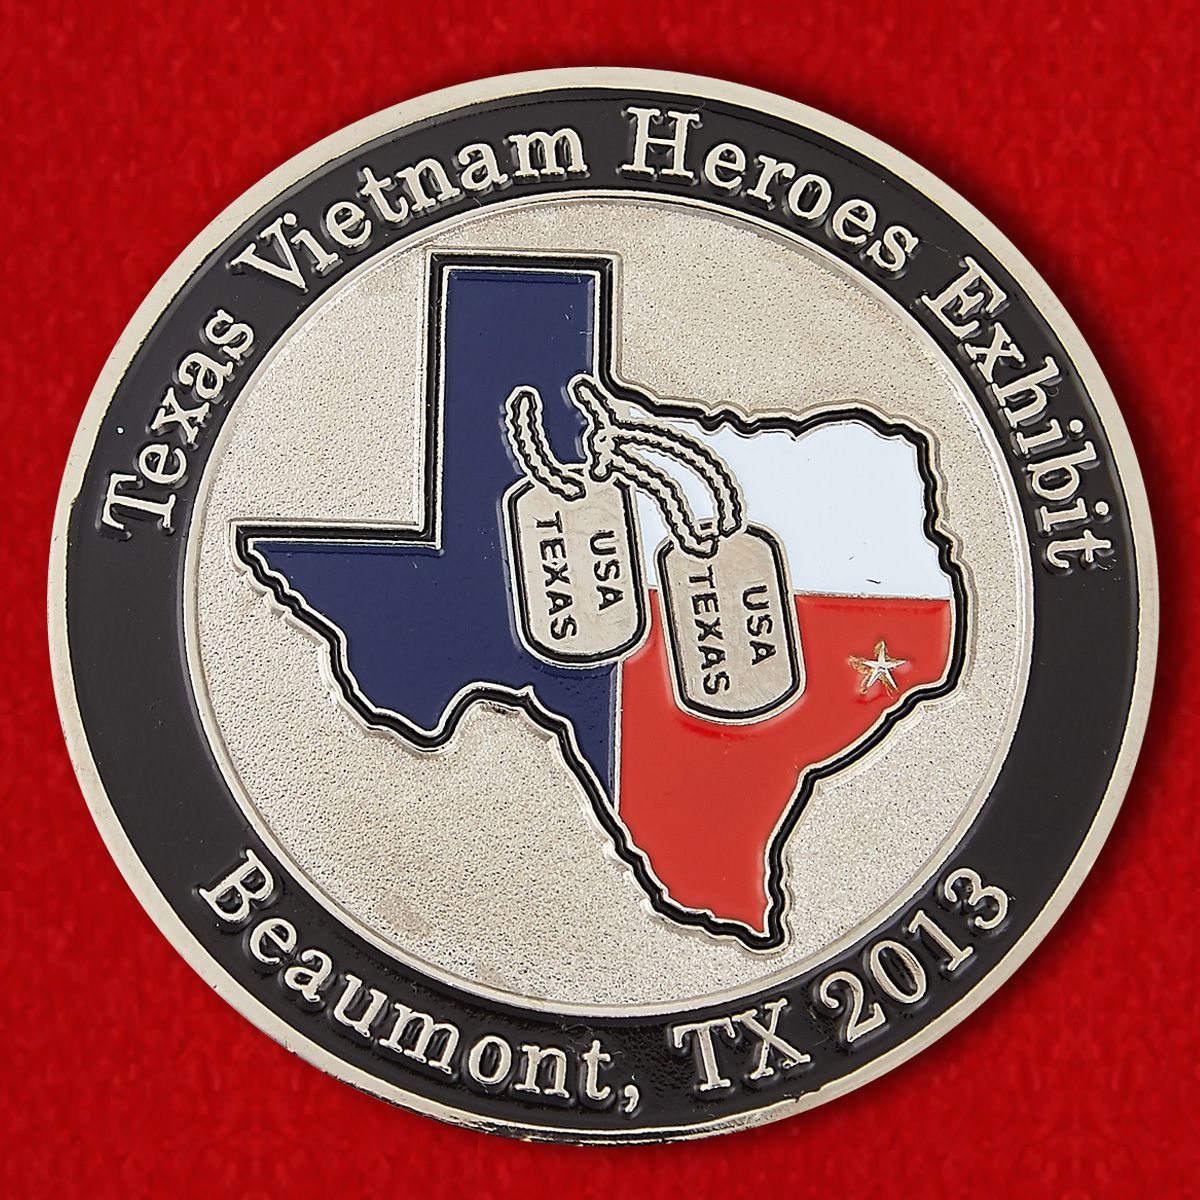 "Challenge Coin ""Exhibition heroes of Vietnam in Beau mont, Texas"""